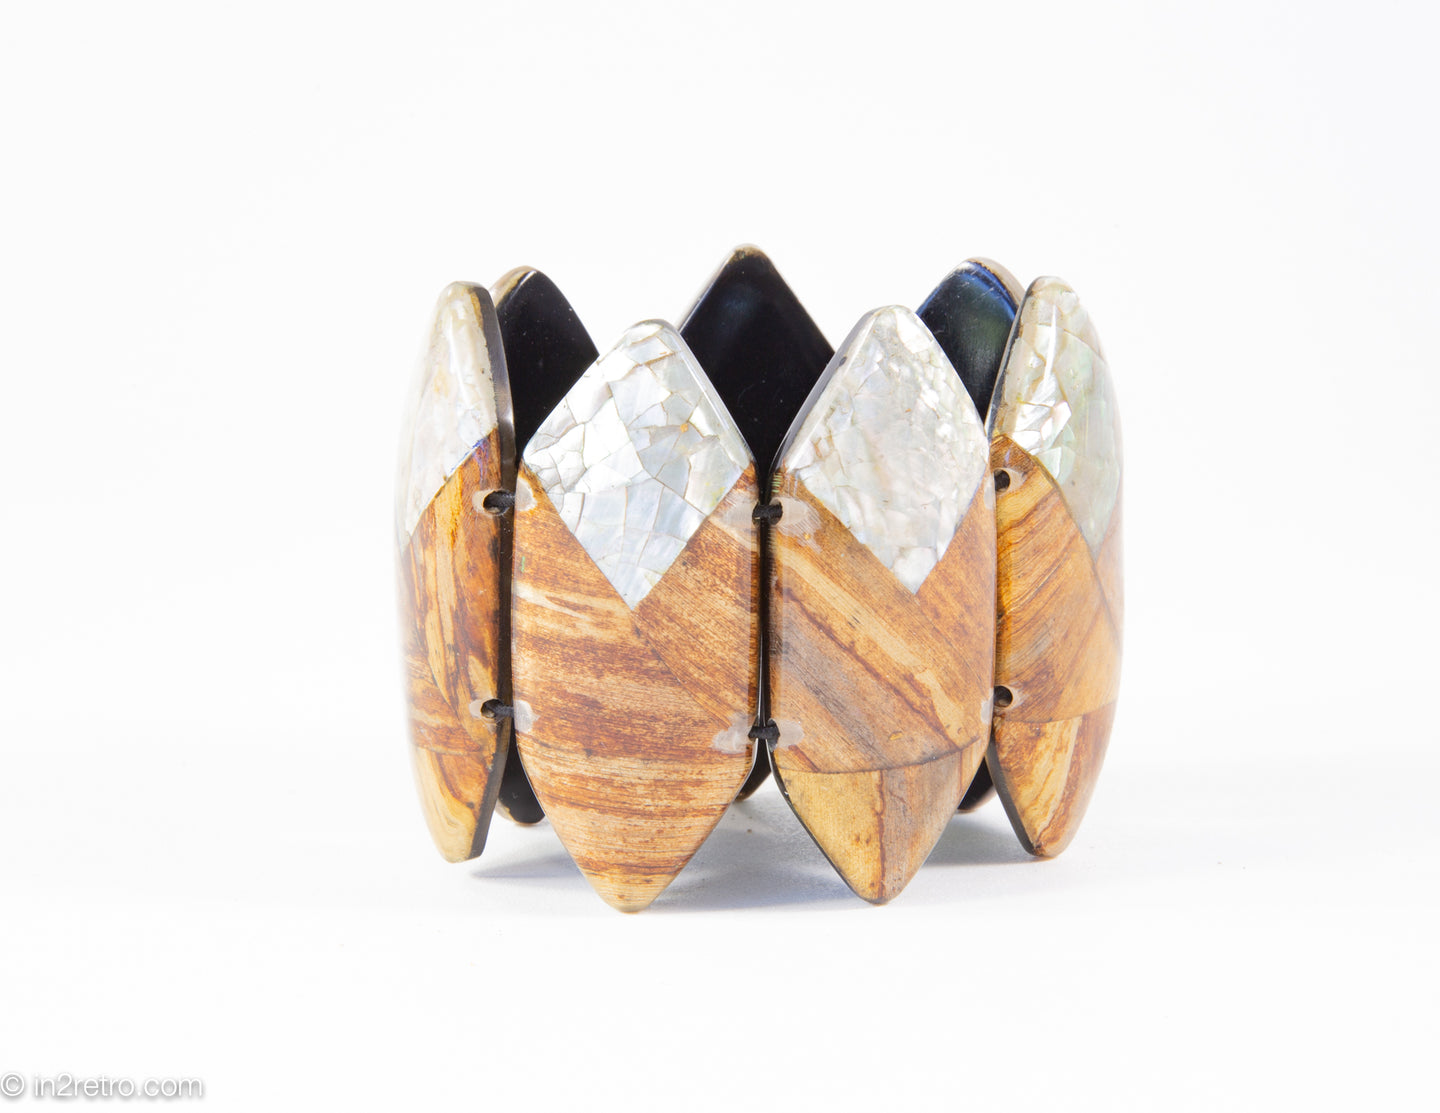 VINTAGE WOOD-TONES RESIN AND ABALONE POINTED OVALS STRETCH BRACELET